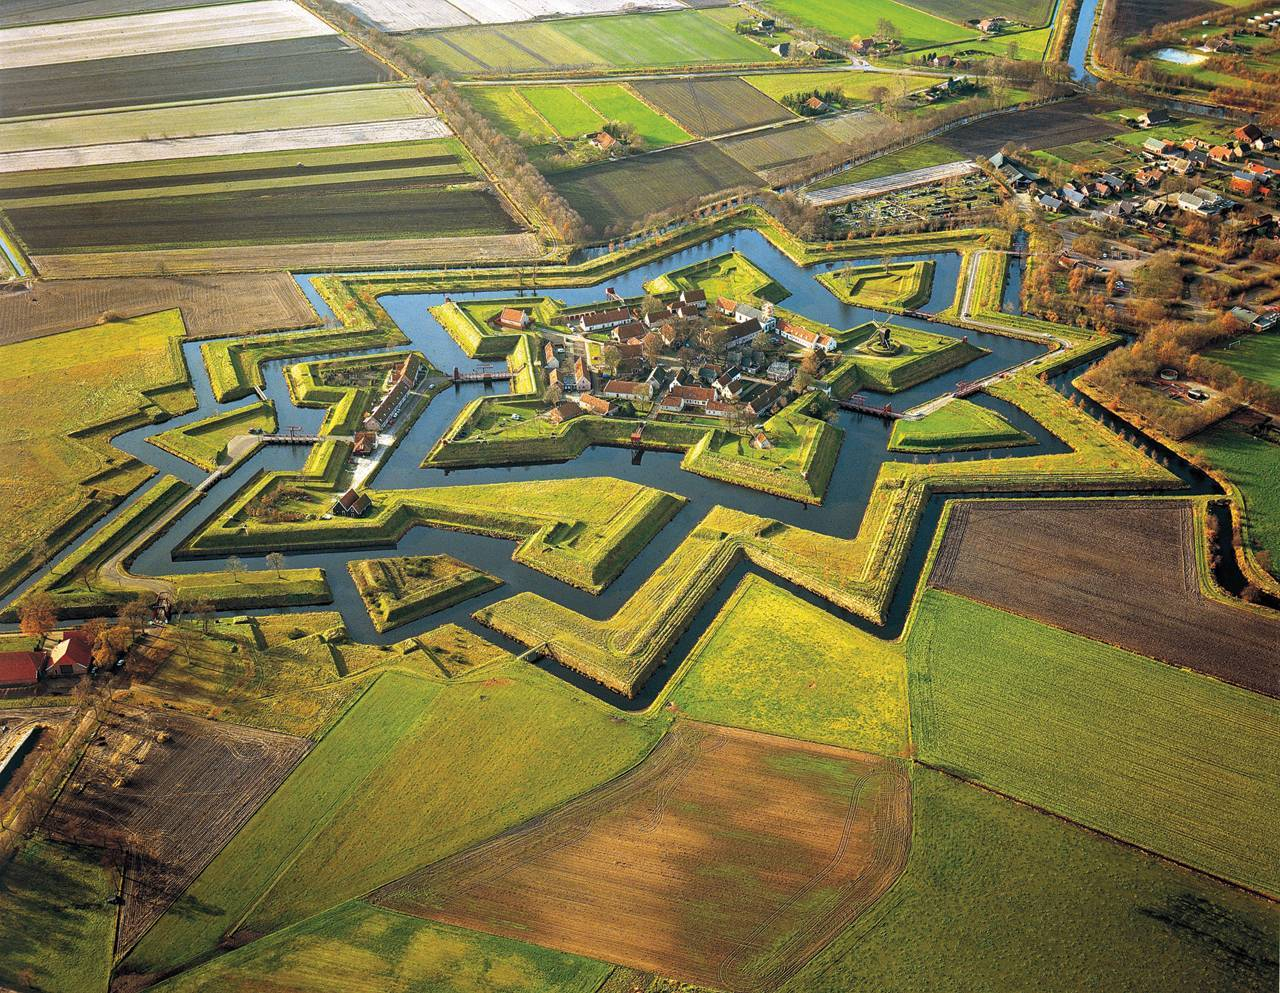 Fort Bourtange, Groningen, Netherlands. Built during the Eight Year War (1568–1648) under William I of Orange.